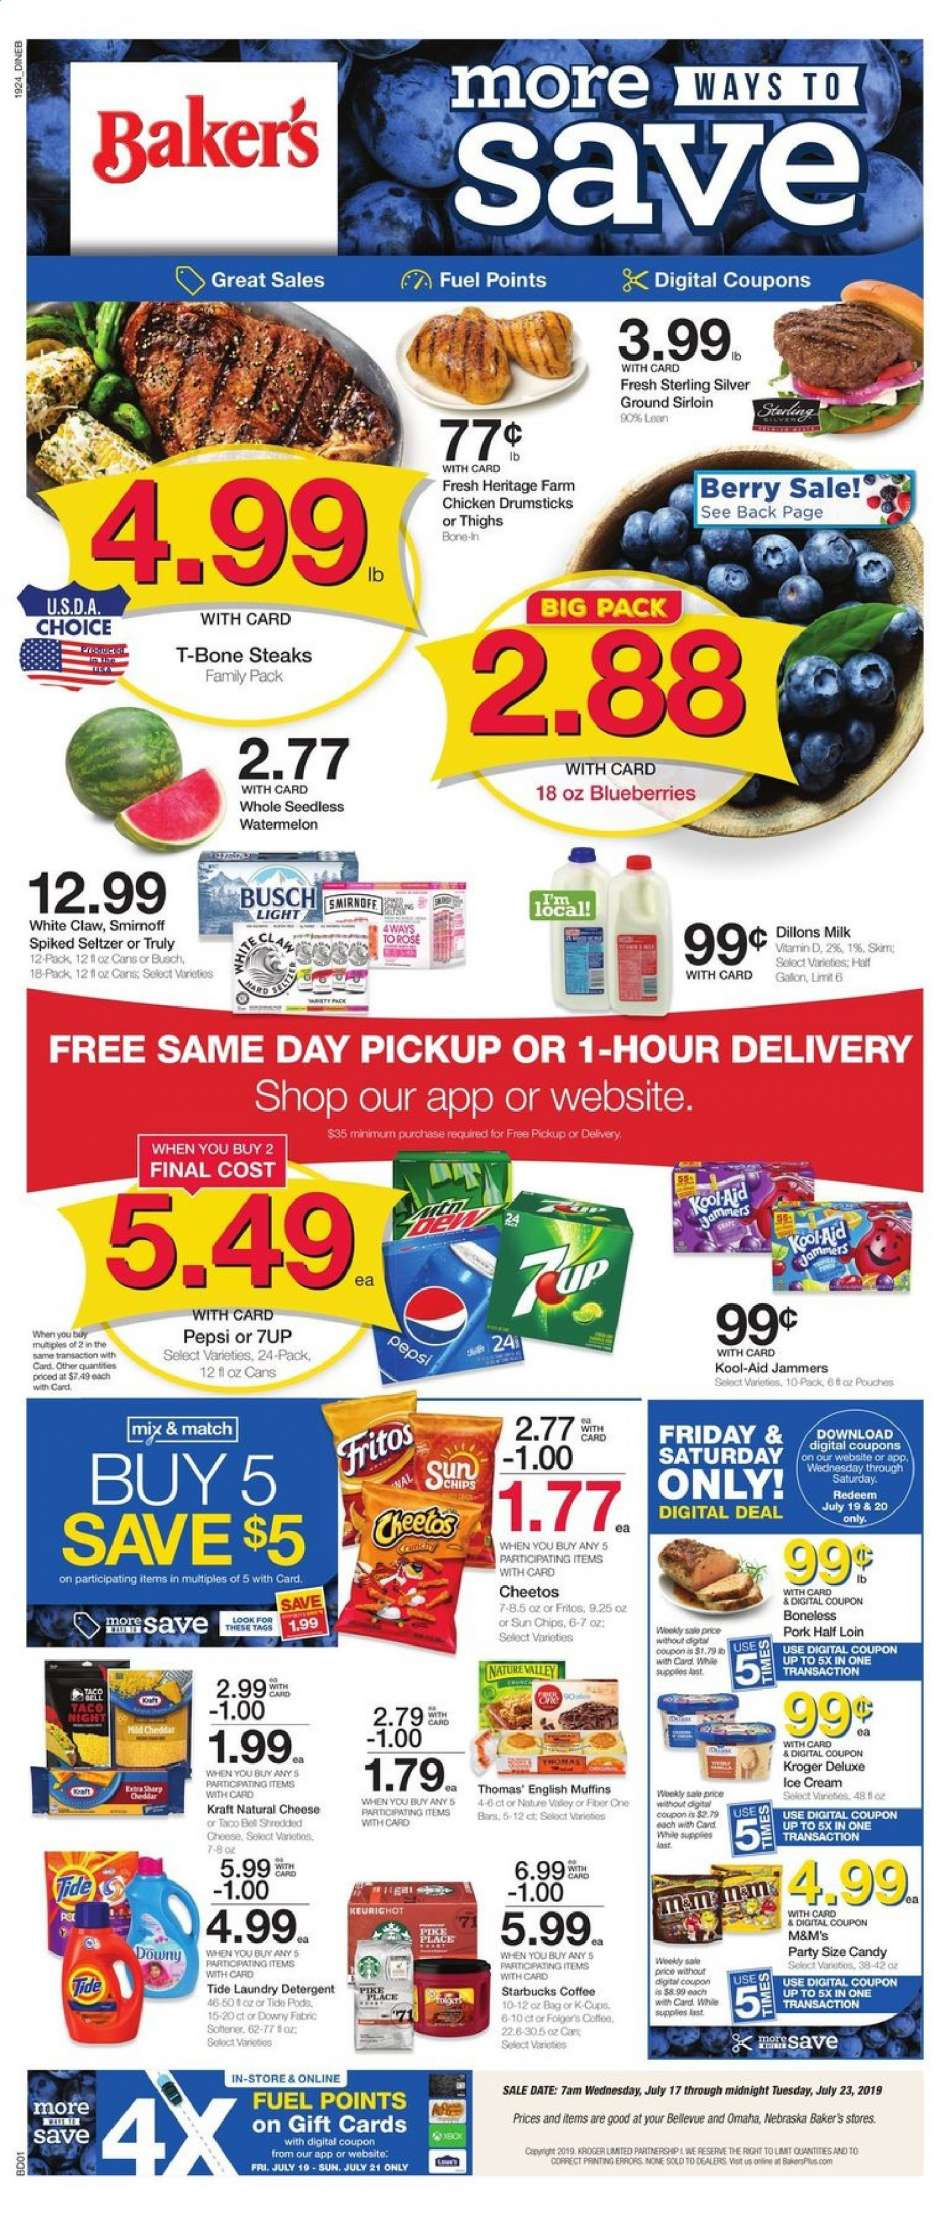 Baker's flyer 07 17 2019 - 07 23 2019 | Weekly-ads us